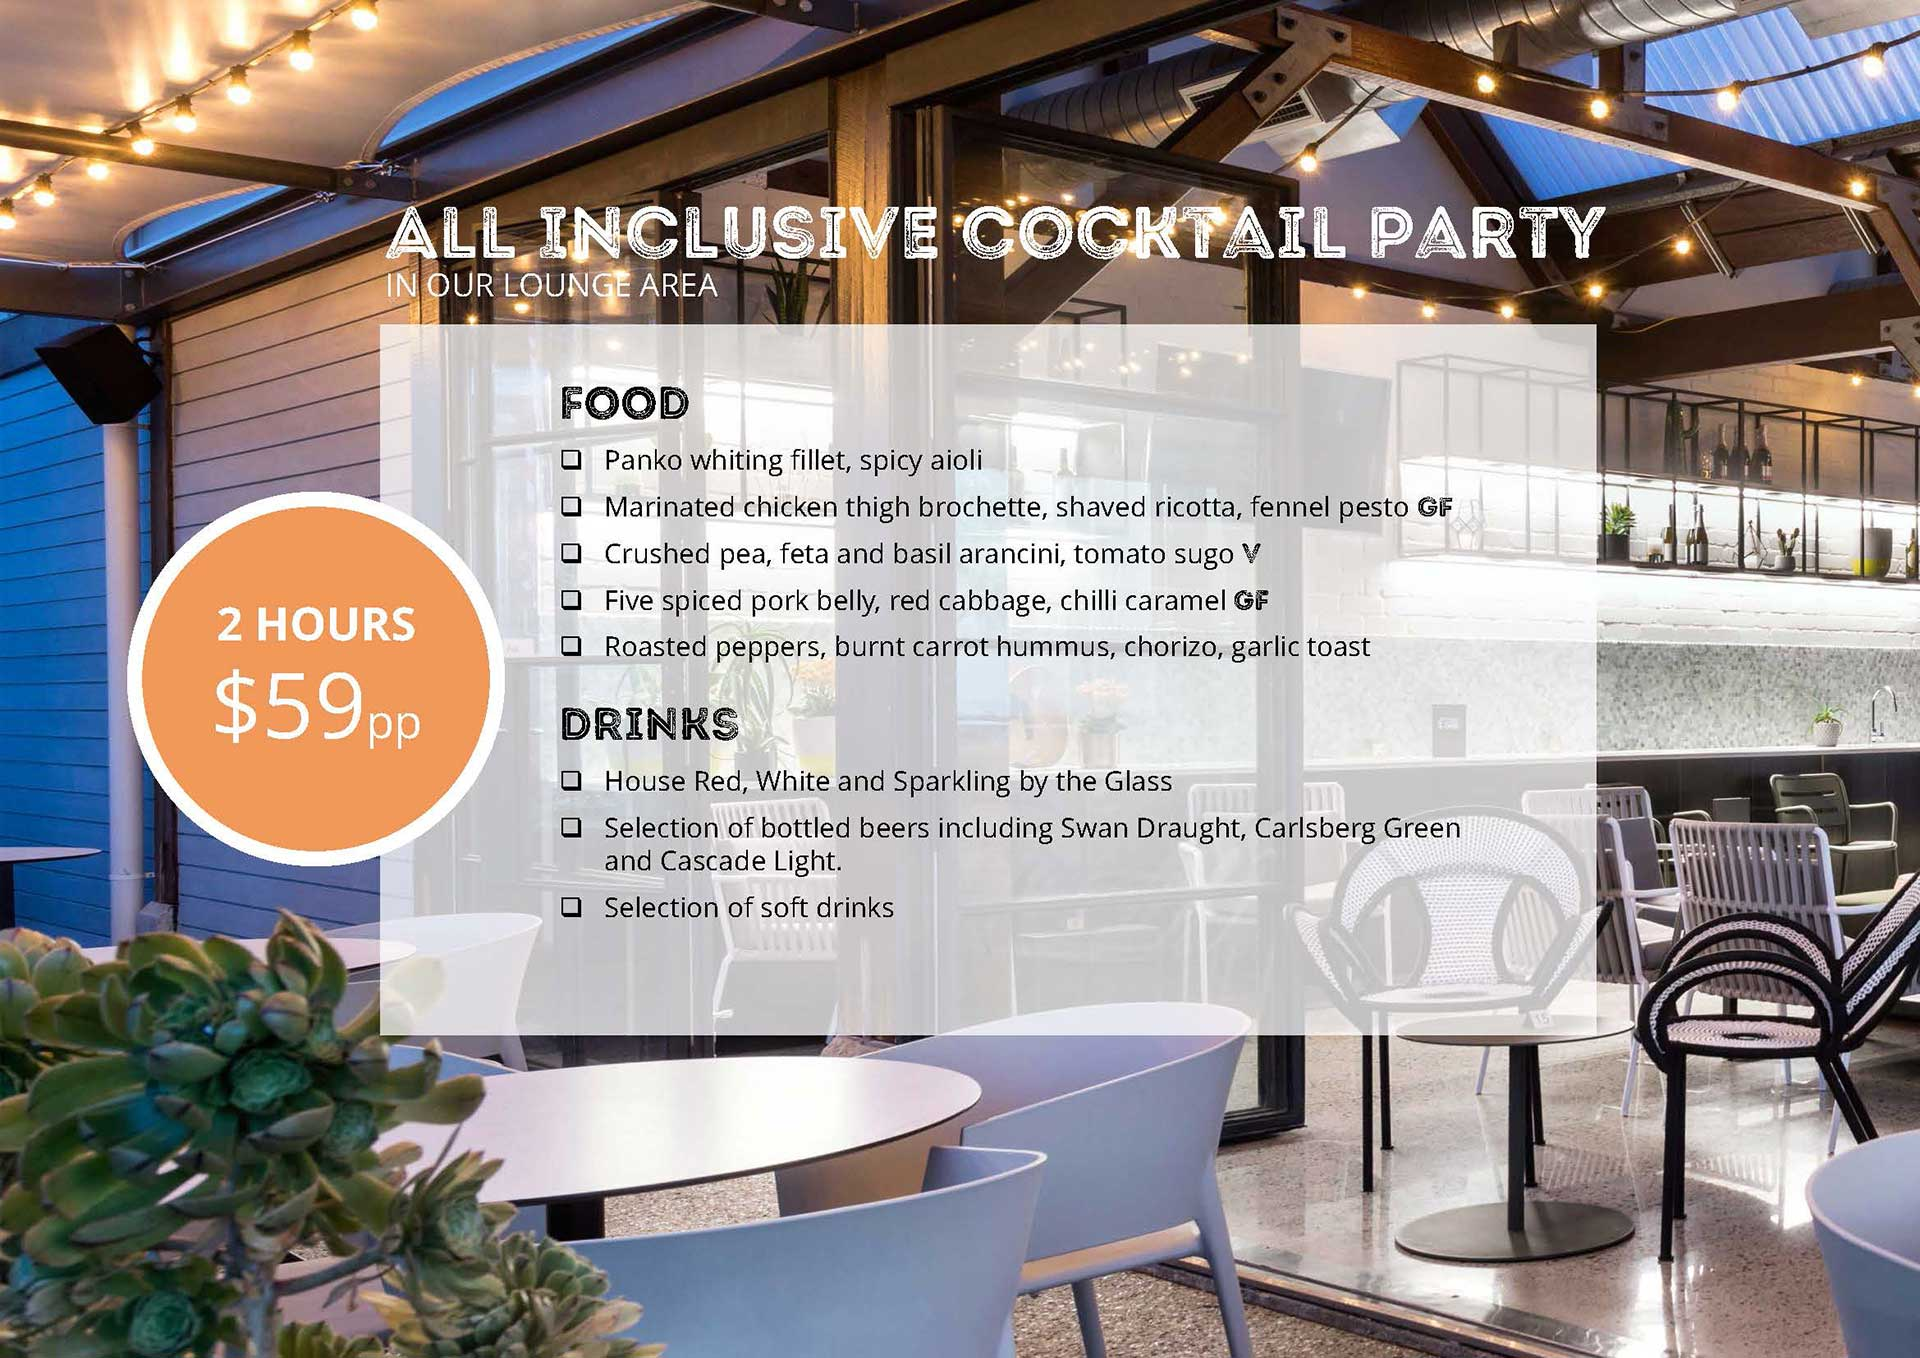 All Inclusive Cocktail Party